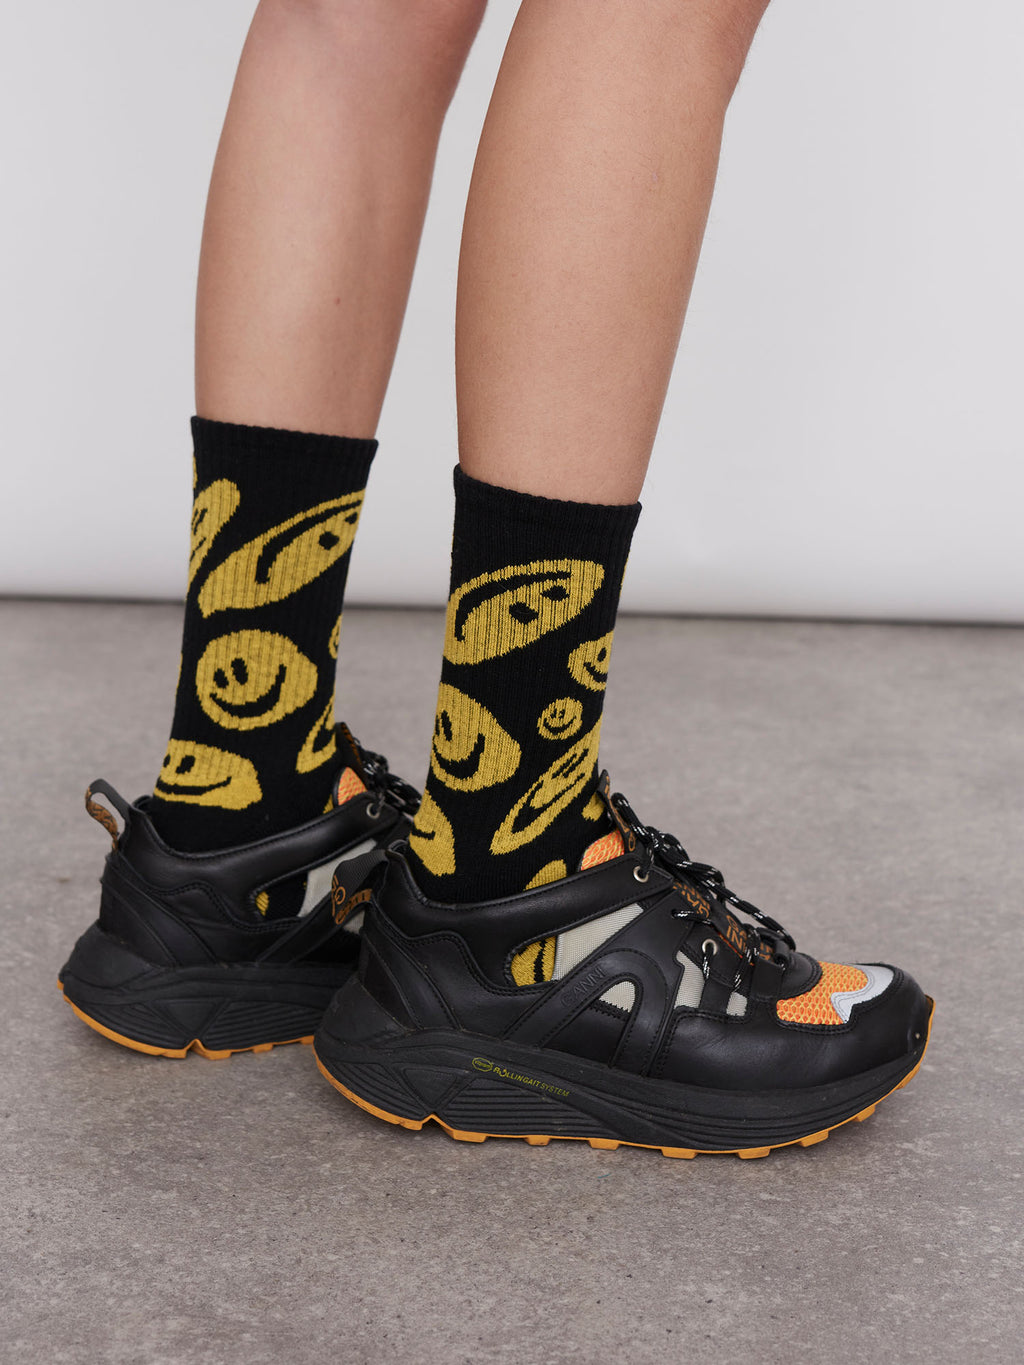 Lazy Oaf Squish Face Socks